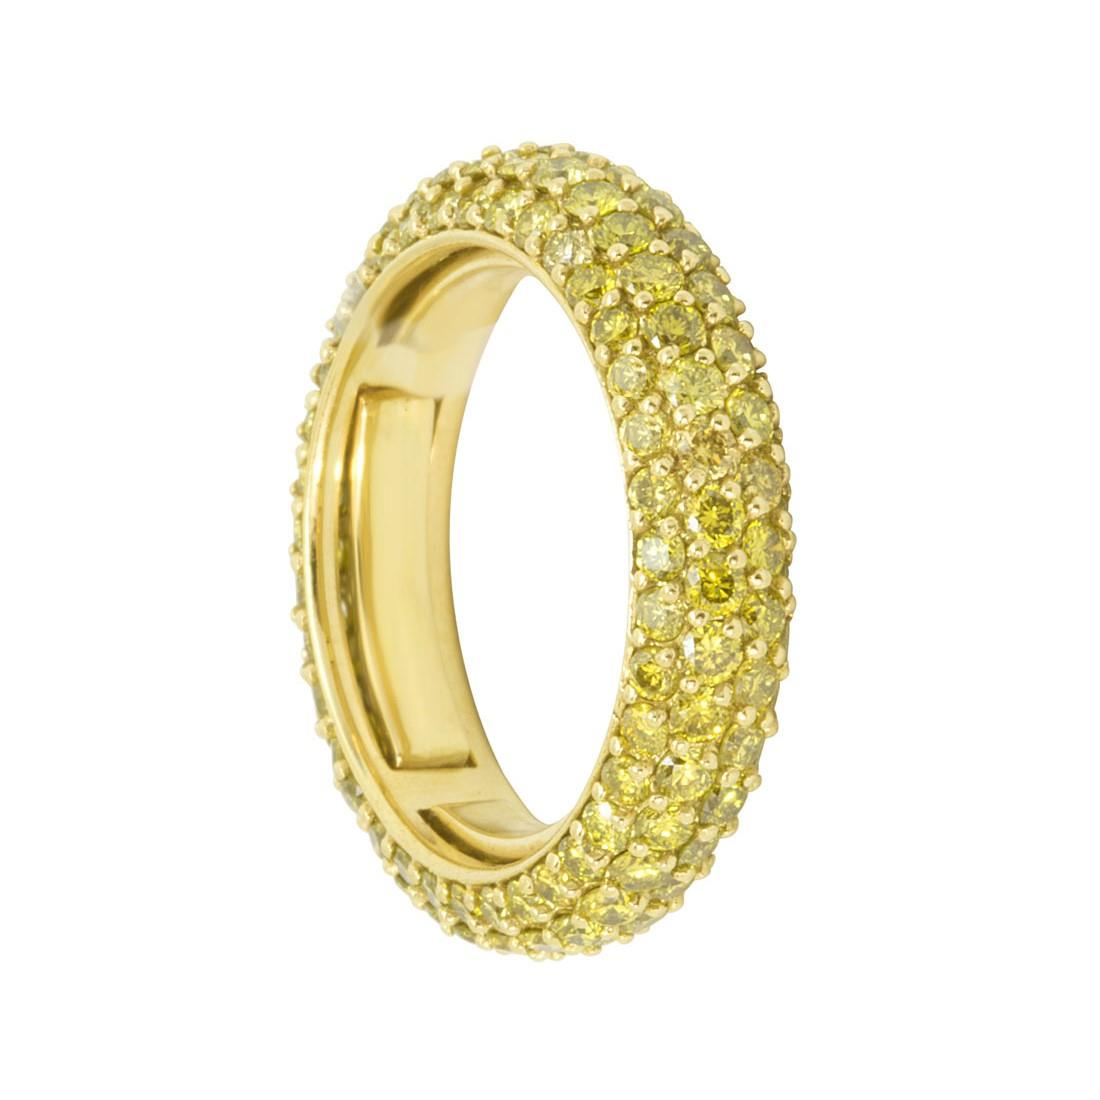 Anello eternity in oro giallo con diamanti gialli ct 2.50 - ALFIERI ST JOHN